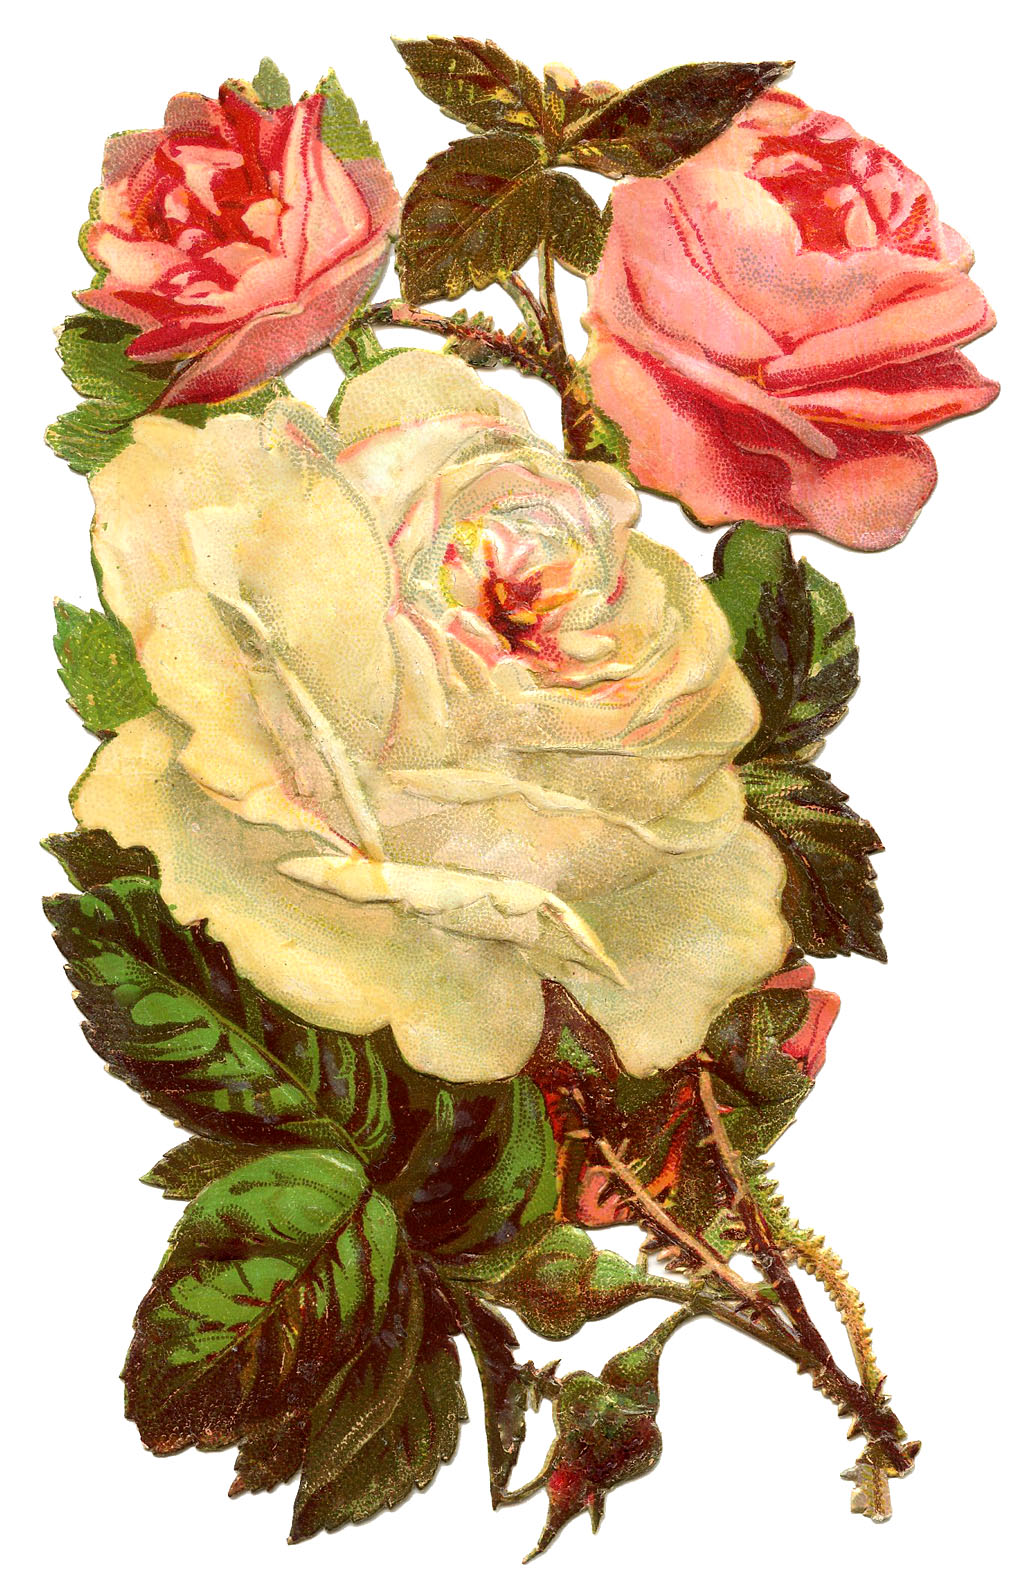 Antique Graphic - Pink and White Roses - The Graphics Fairy